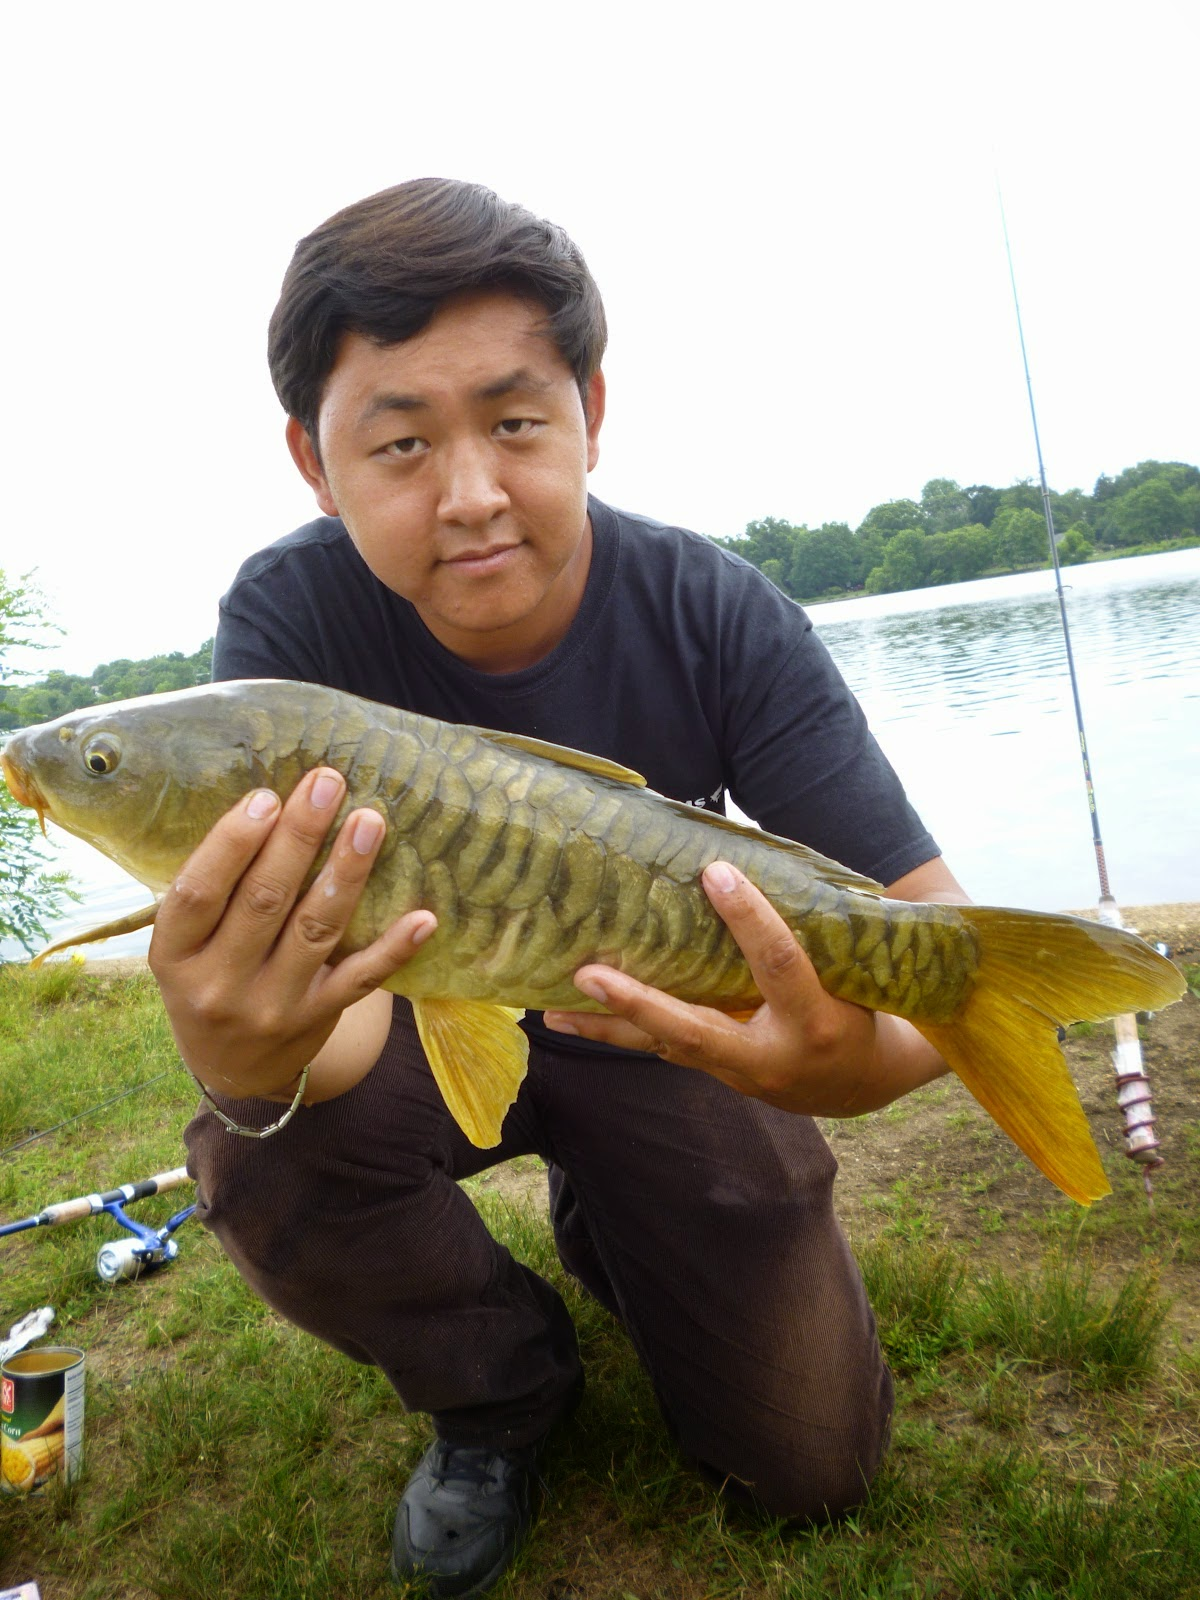 extreme philly fishing introducing the cooper river lake and the i holding our respective common carp at the cooper river lake during the warmer months it s not that uncommon to see two rods bending consecutively